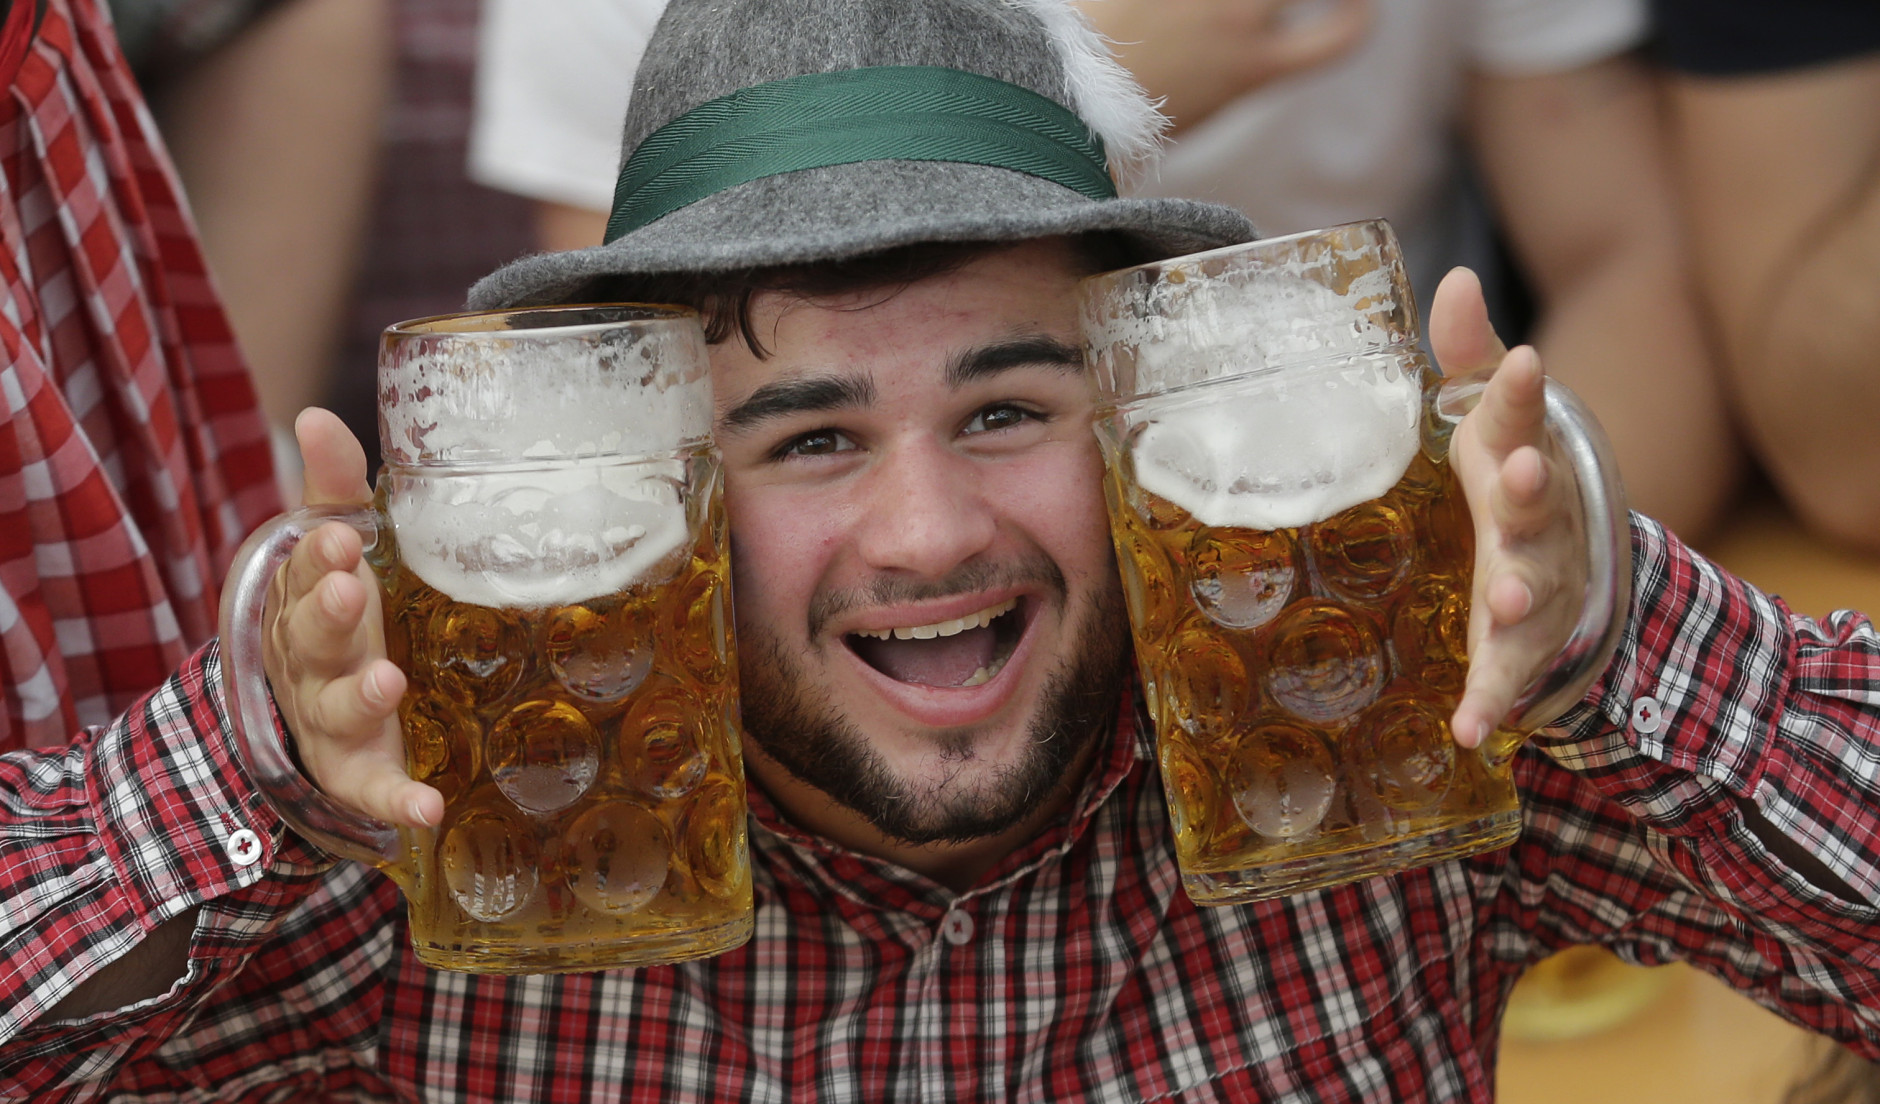 A young man poses with beer mugs at the second weekend in the 'Hofbraeuhaus beer tent' at the famous beer festival Oktoberfest in Munich, southern Germany, Sunday, Sept. 28, 2014. The world's largest beer festival will be held from Sept. 22 to Oct. 5, 2014. (AP Photo/Matthias Schrader)